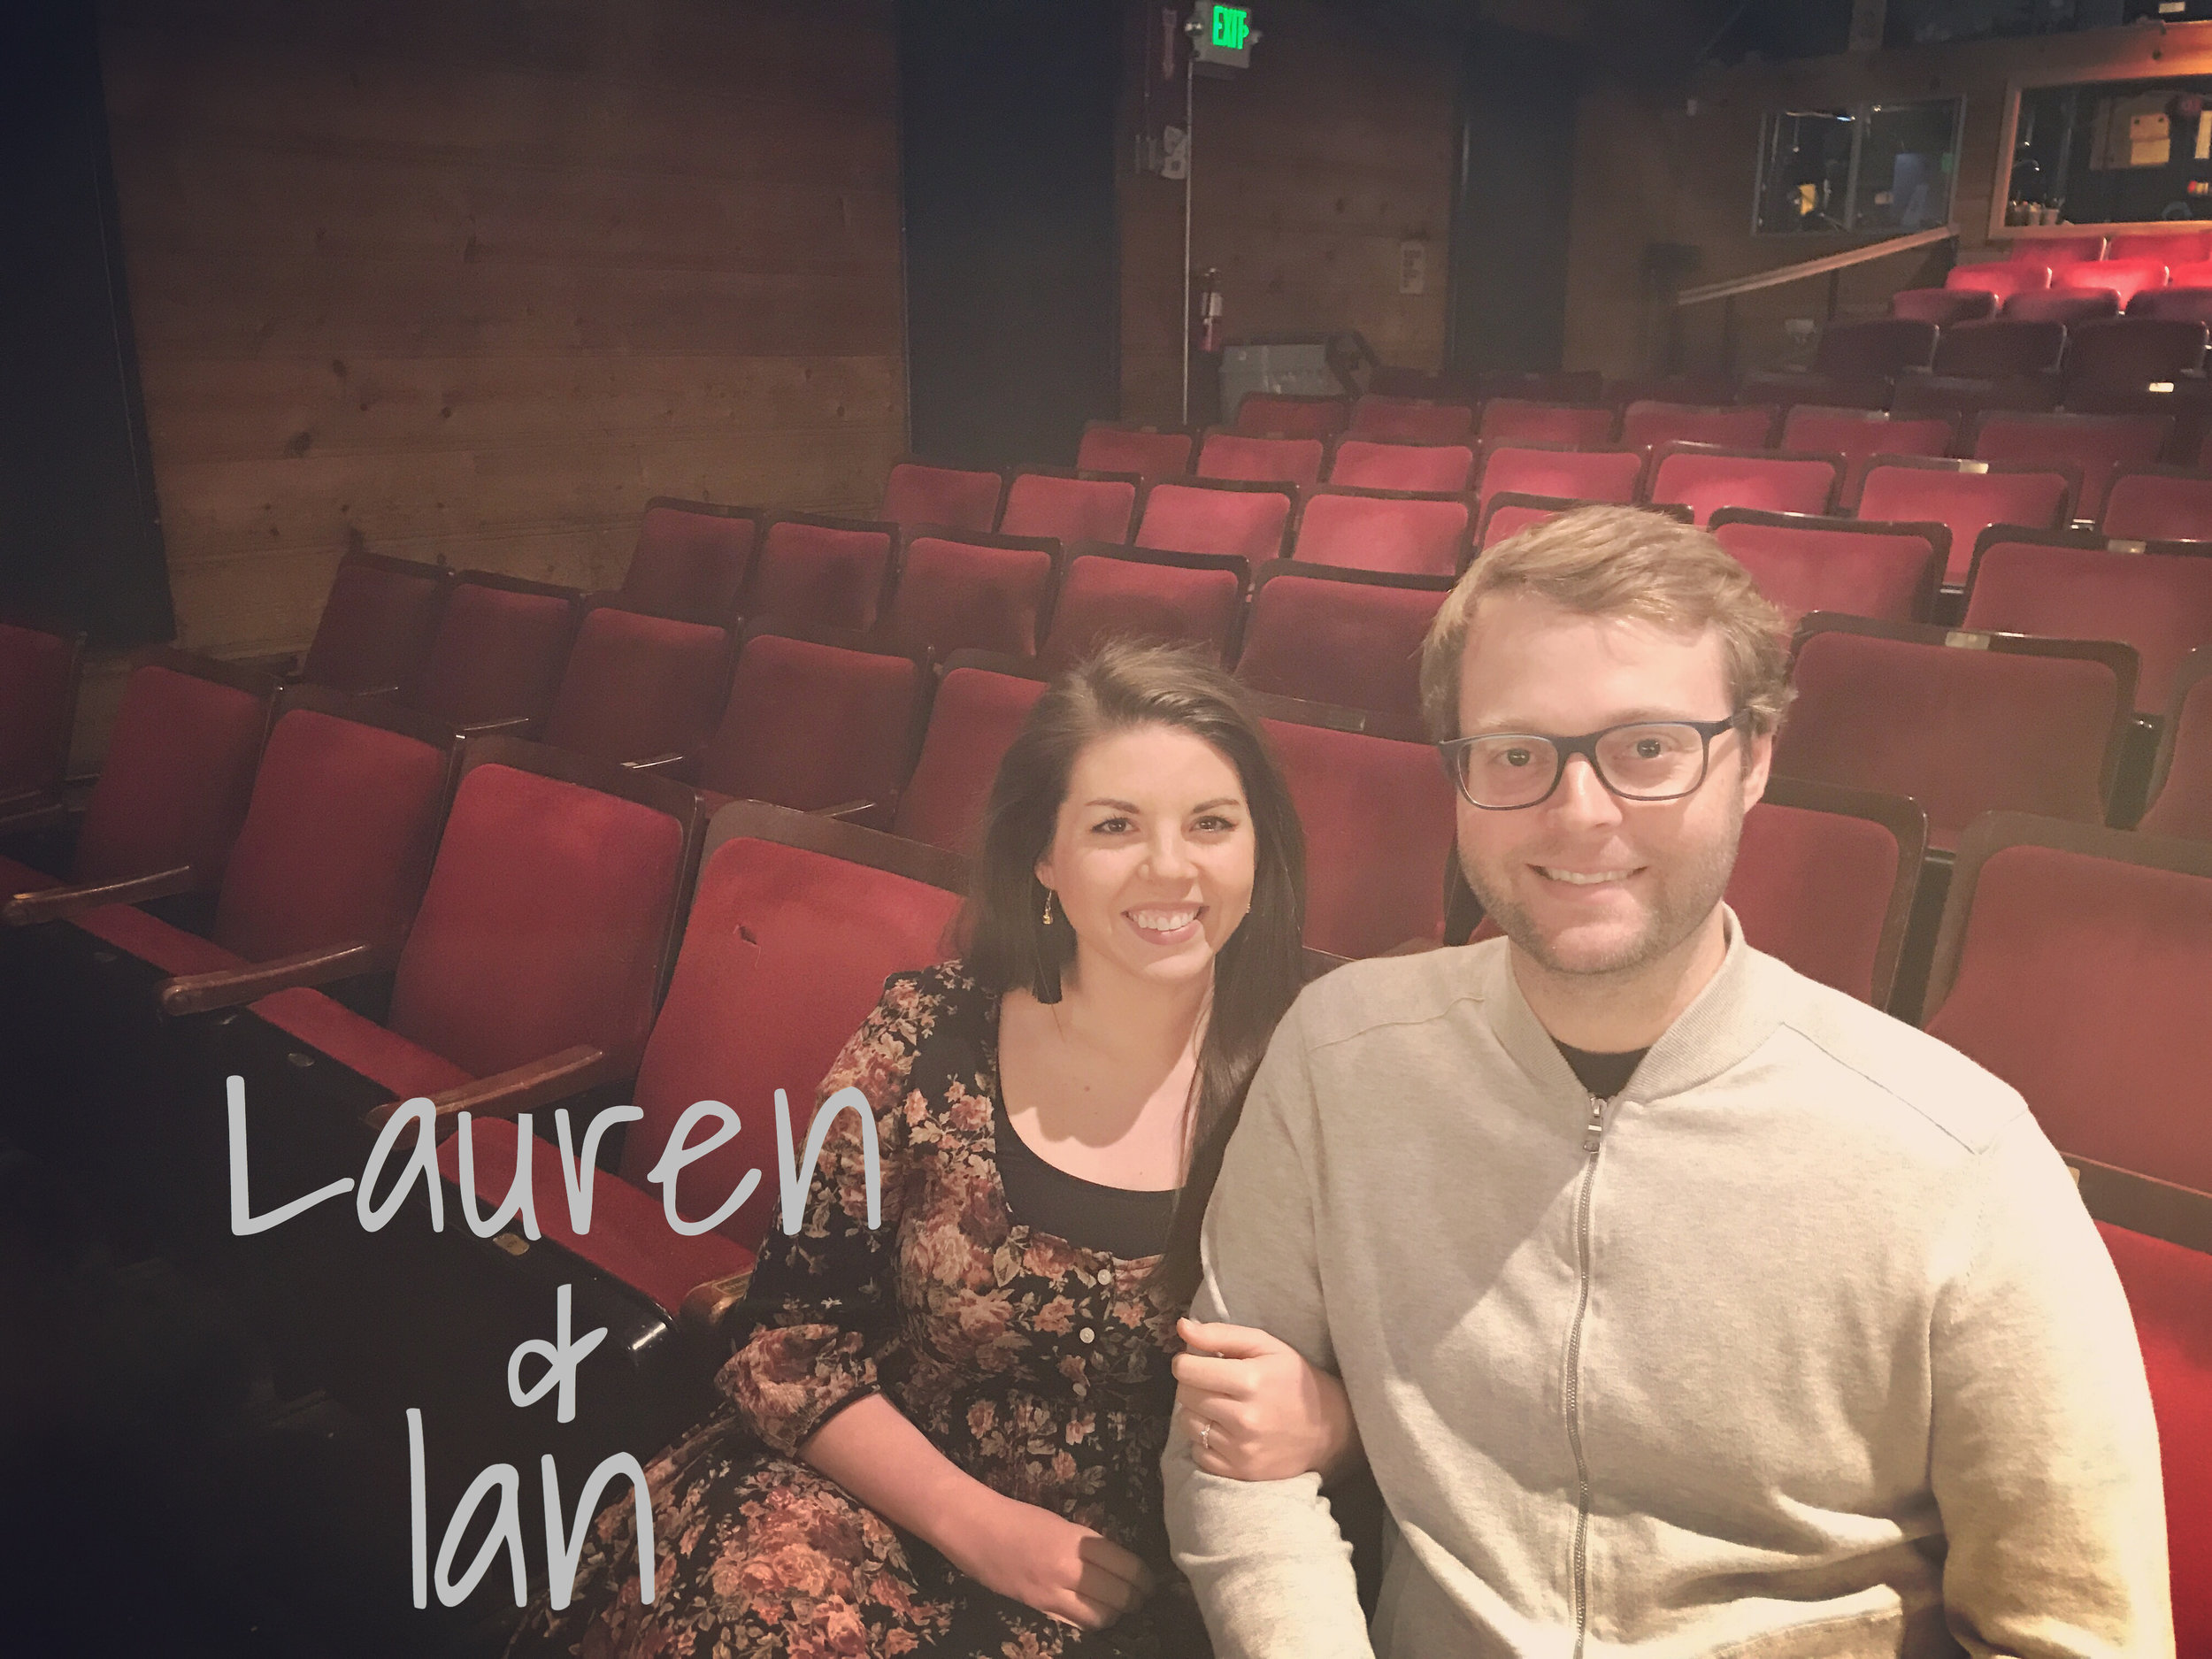 Ian and Lauren - READ WHAT IAN HAS TO SAY ABOUT THE REVOLUTIONISTS!READ WHAT LAUREN AND IAN HAS TO SAY ABOUT GREAT EXPECTATIONS!READ WHAT LAUREN AND IAN HAVE TO SAY ABOUT BROOKLYN BRIDGE!READ WHAT LAUREN AND IAN HAVE TO SAY ABOUT WOMEN ON THE VERGE!